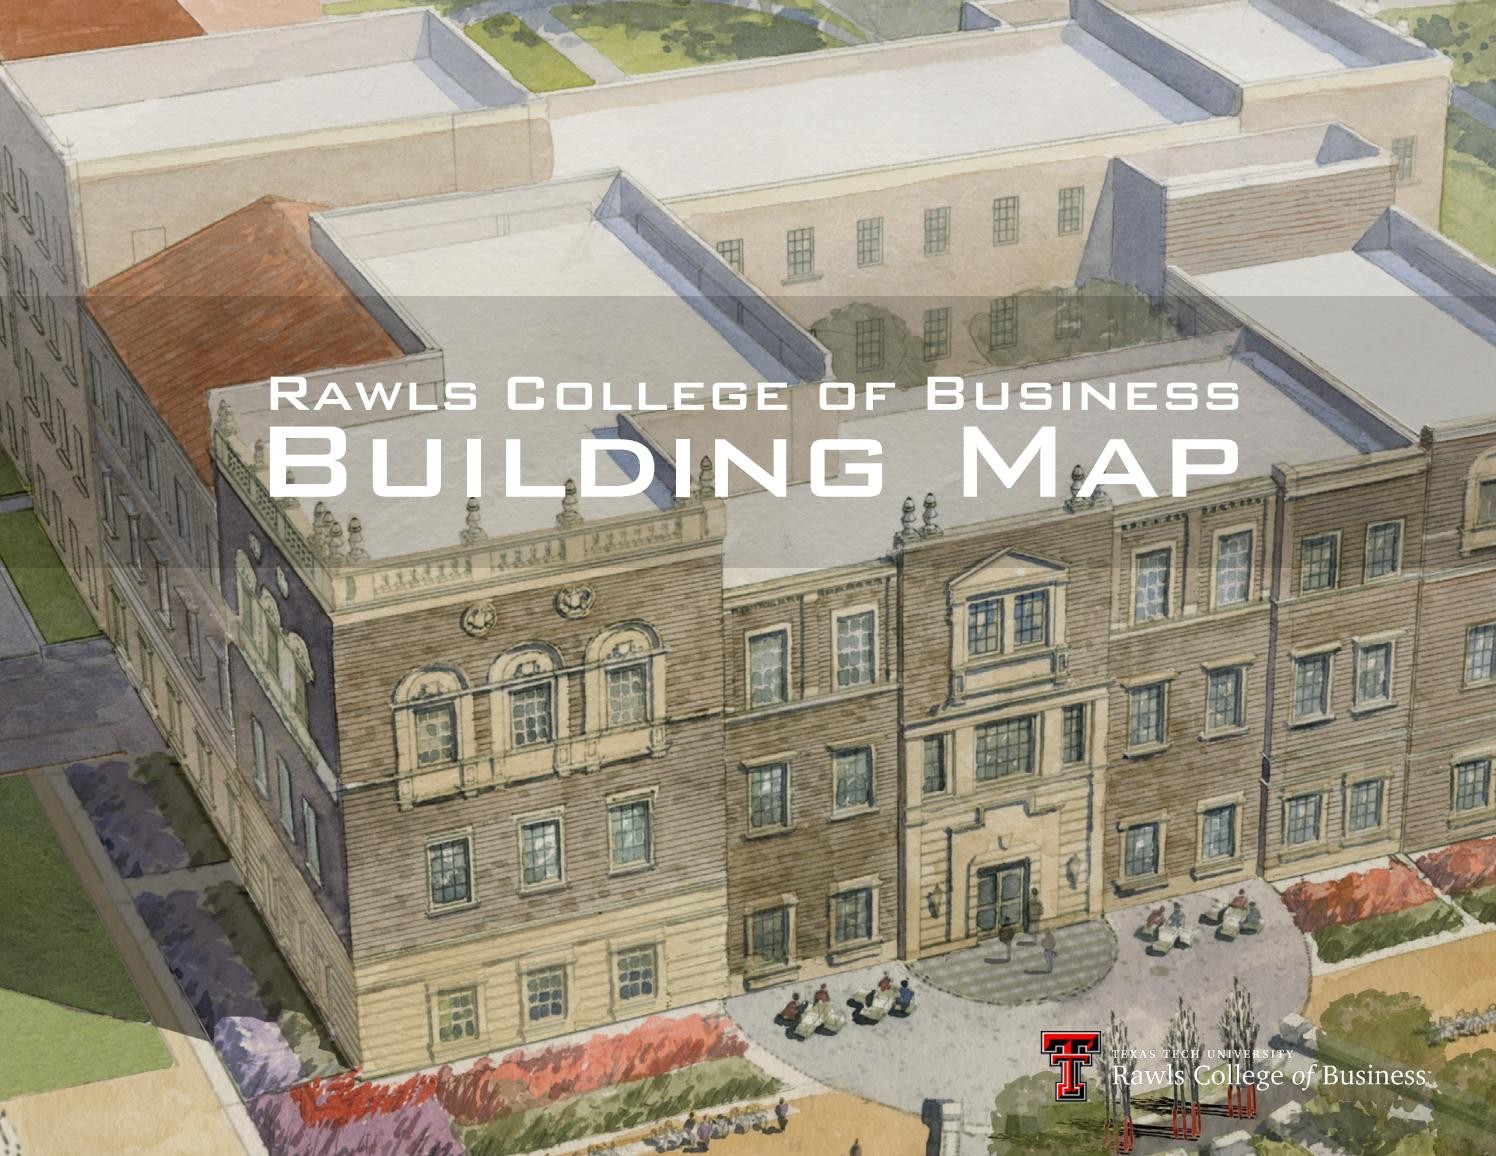 Rawls College of Business Building Map by Rawls College of Business ...